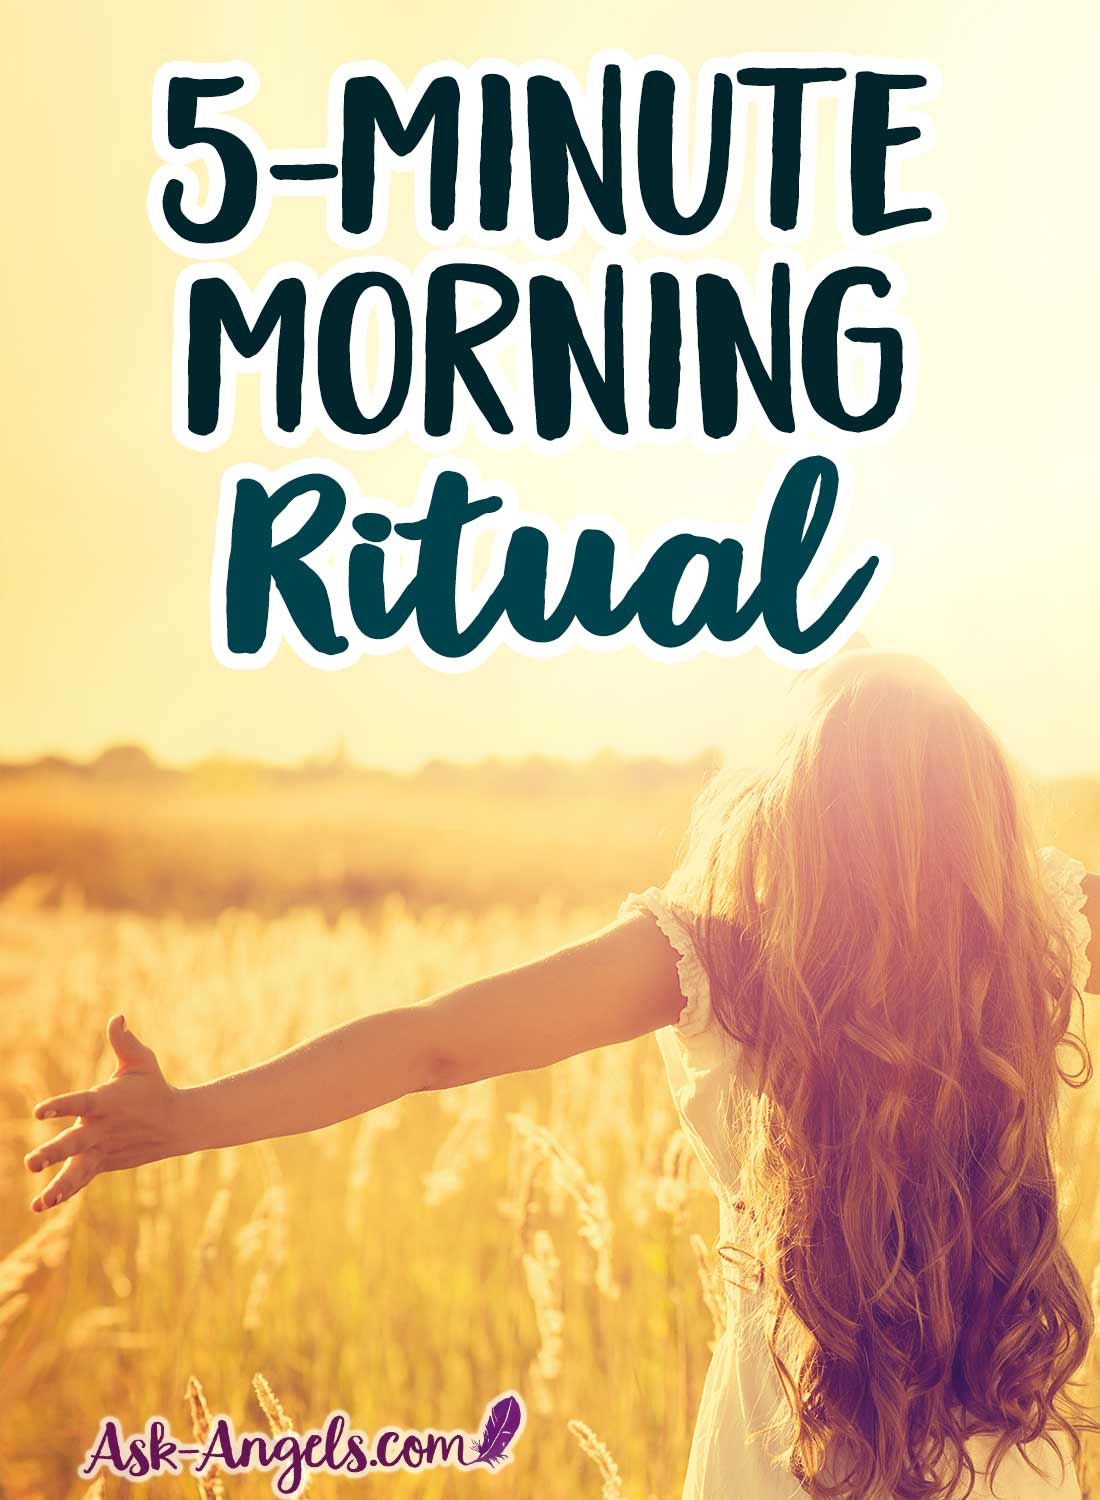 5-Minute Morning Ritual - Start Your Day Off Right